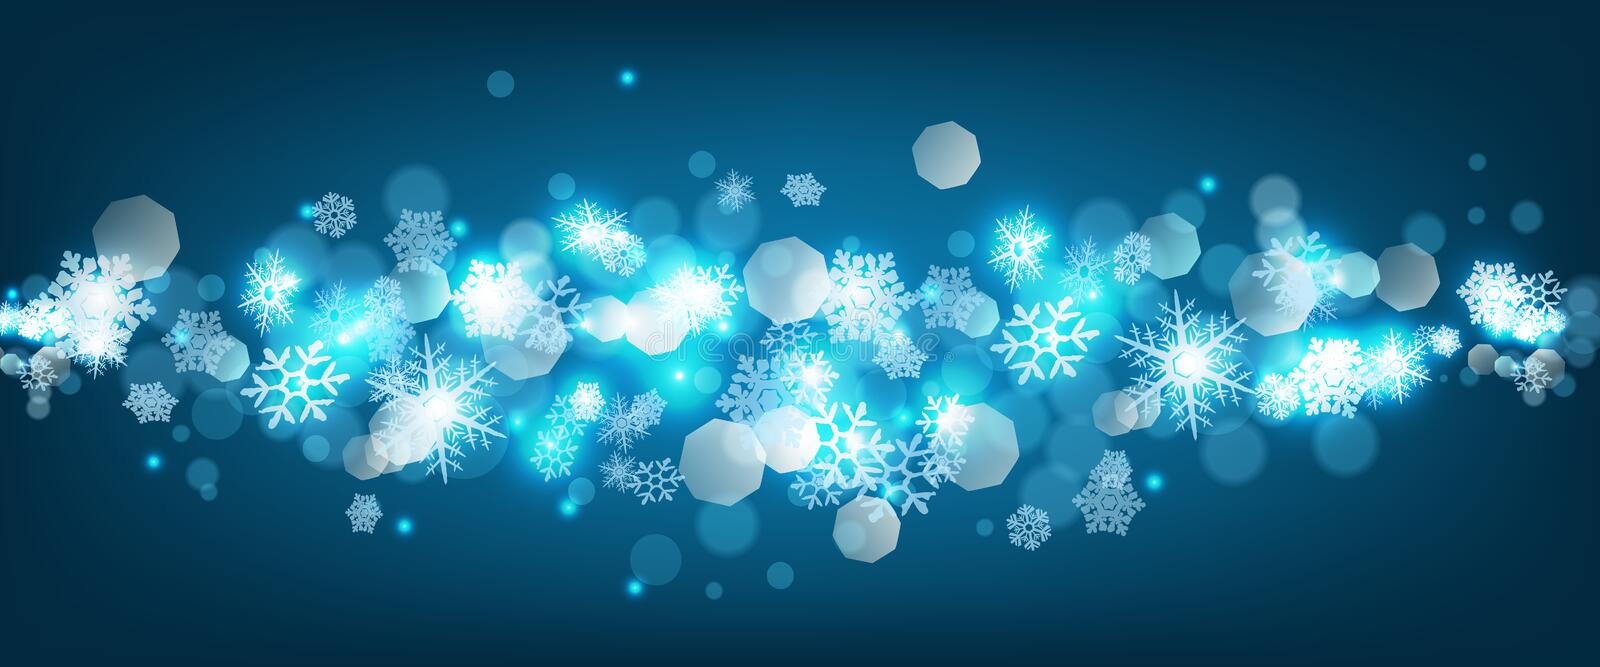 Christmas abstract background royalty free illustration